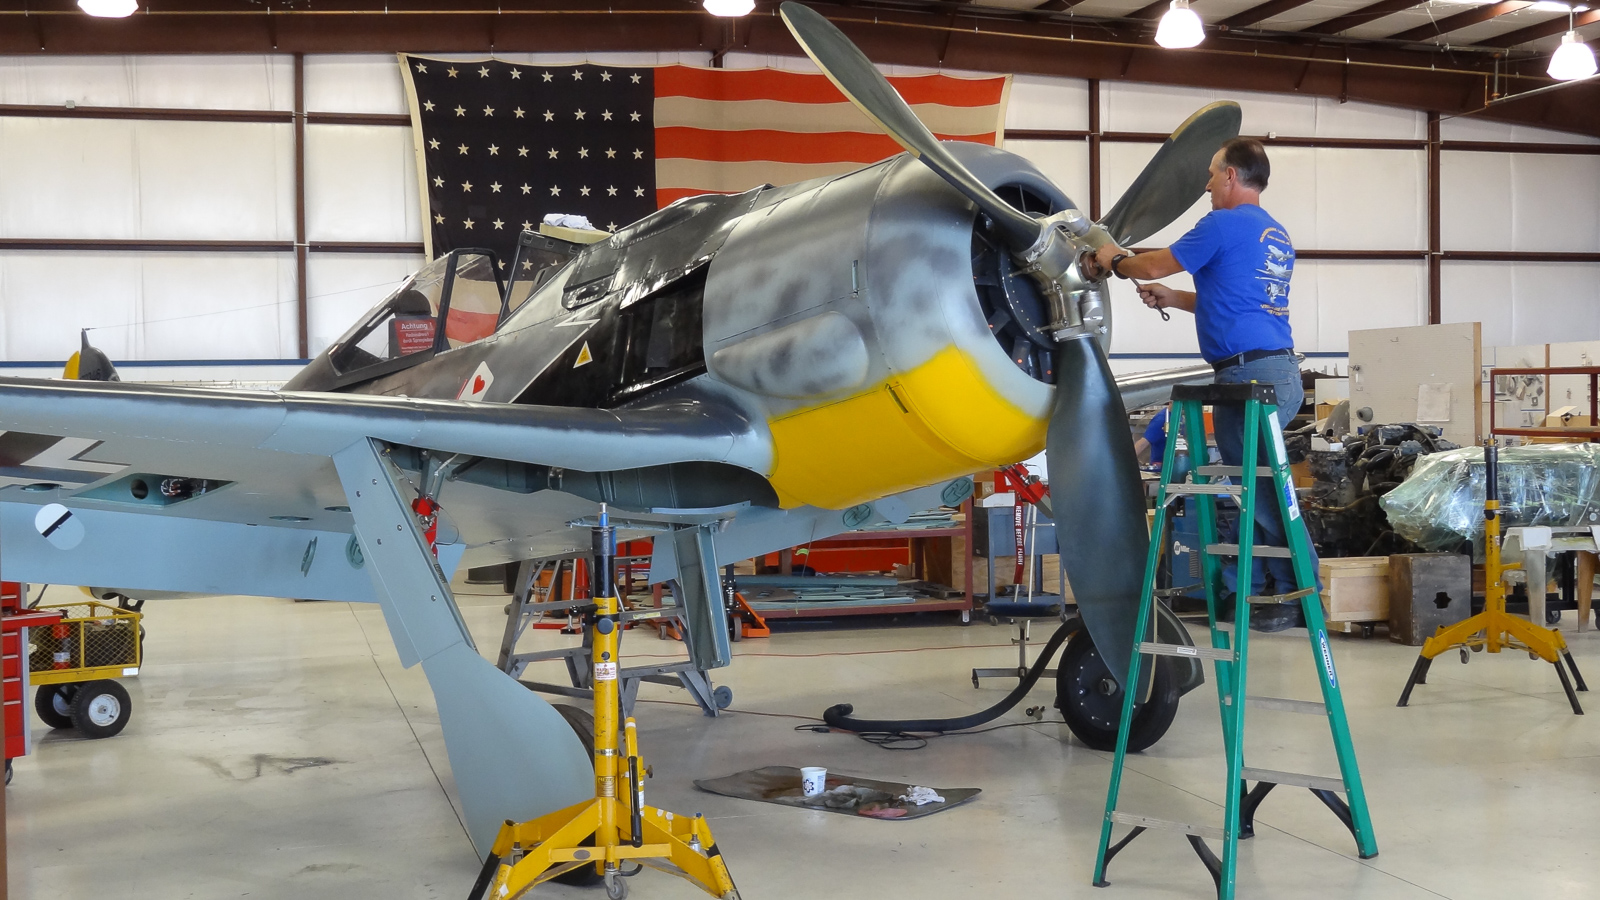 Installing the propeller. (photo via GossHawk Unlimited)